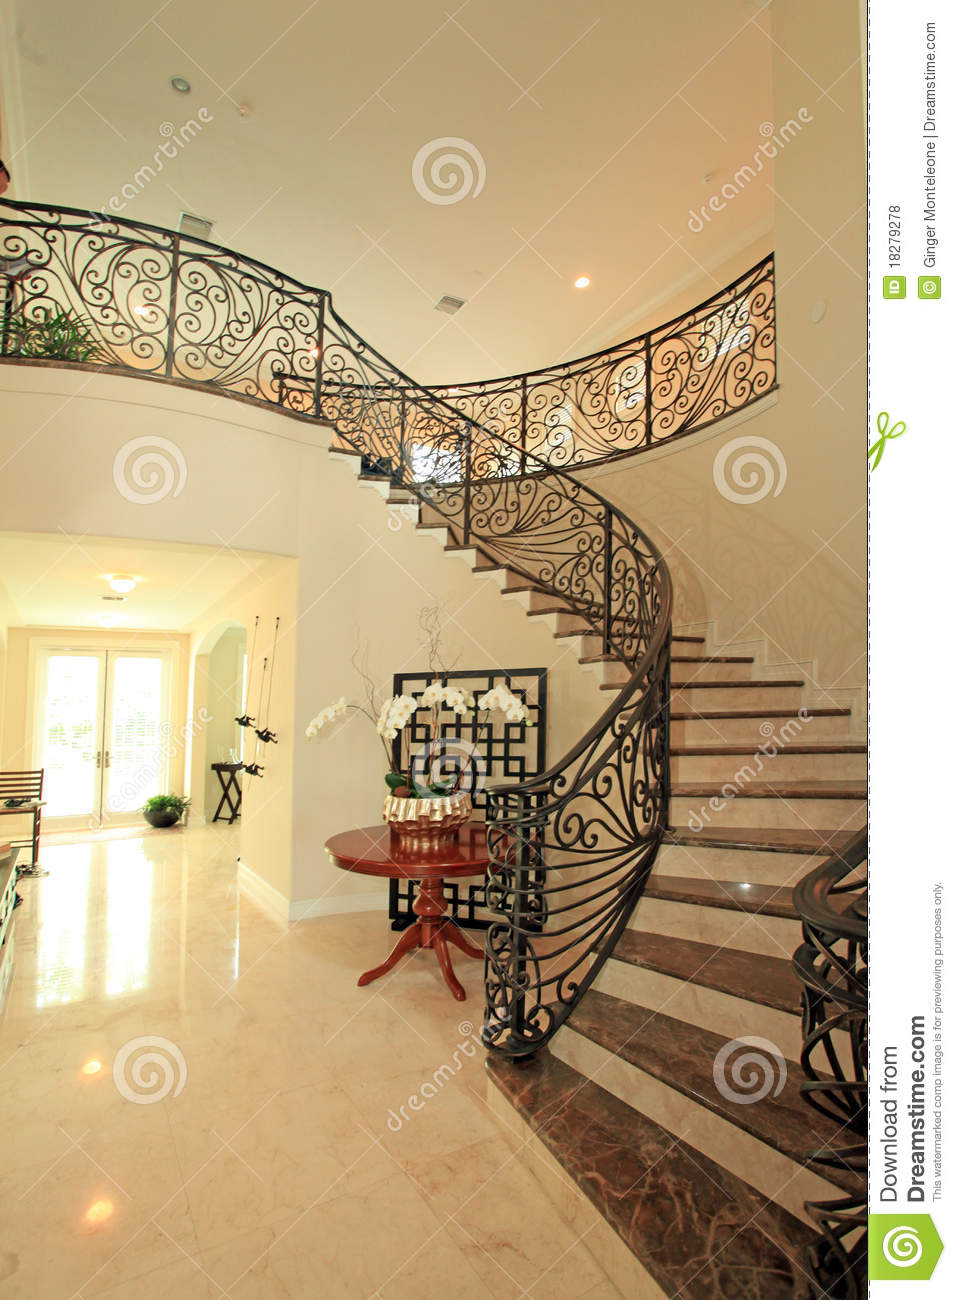 Grand staircase stock photo image of stairs interior for Grand staircase design